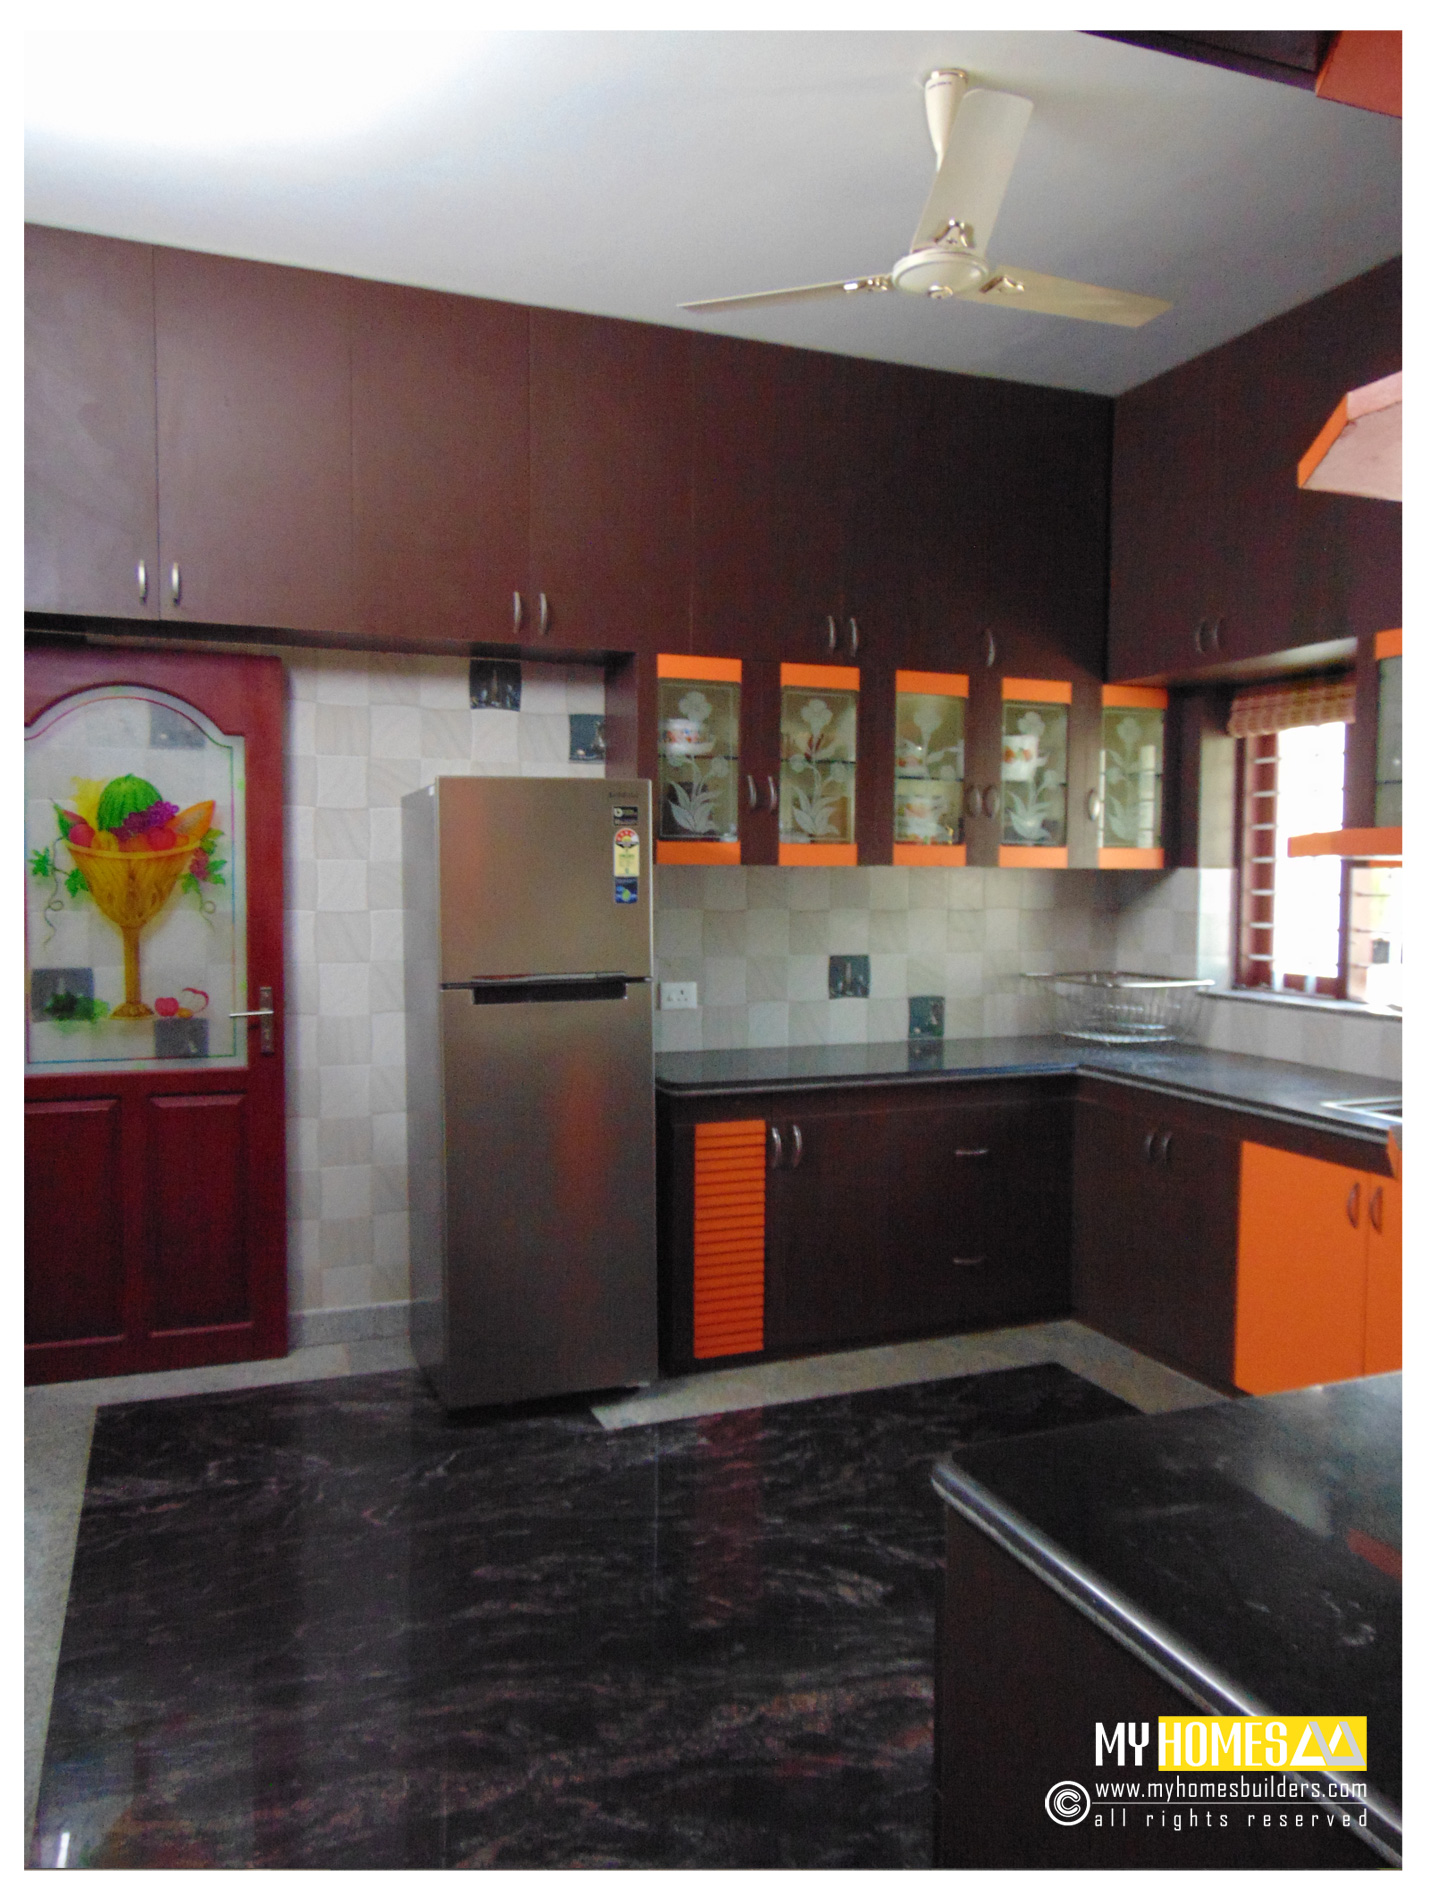 Kerala kitchen designs idea in modular style for house in for Homey kitchen designs